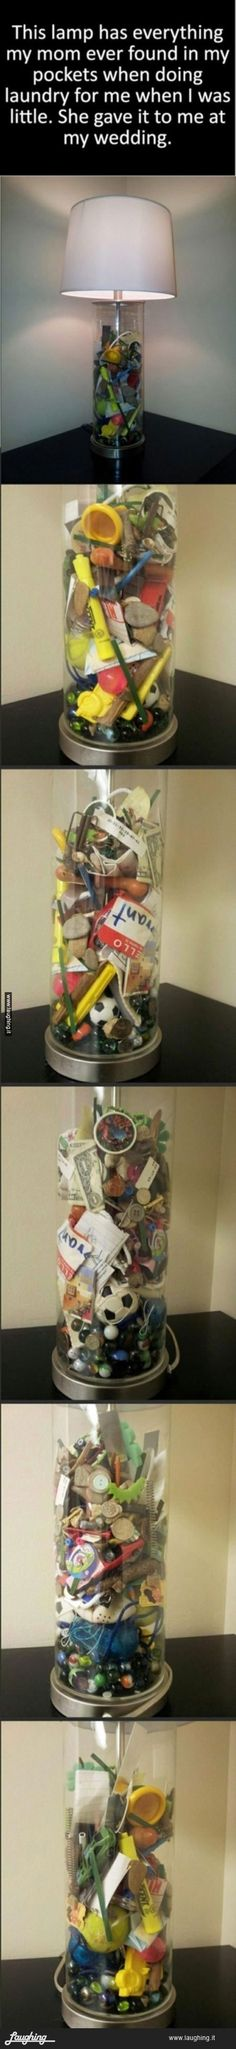 Coolest gift ever! A mom saved everything she ever found in her sons pockets and put it all in a clear lamp. She gave it to him as his wedding. This would awesome for a wedding gift or a moving out/going away to college gift.: